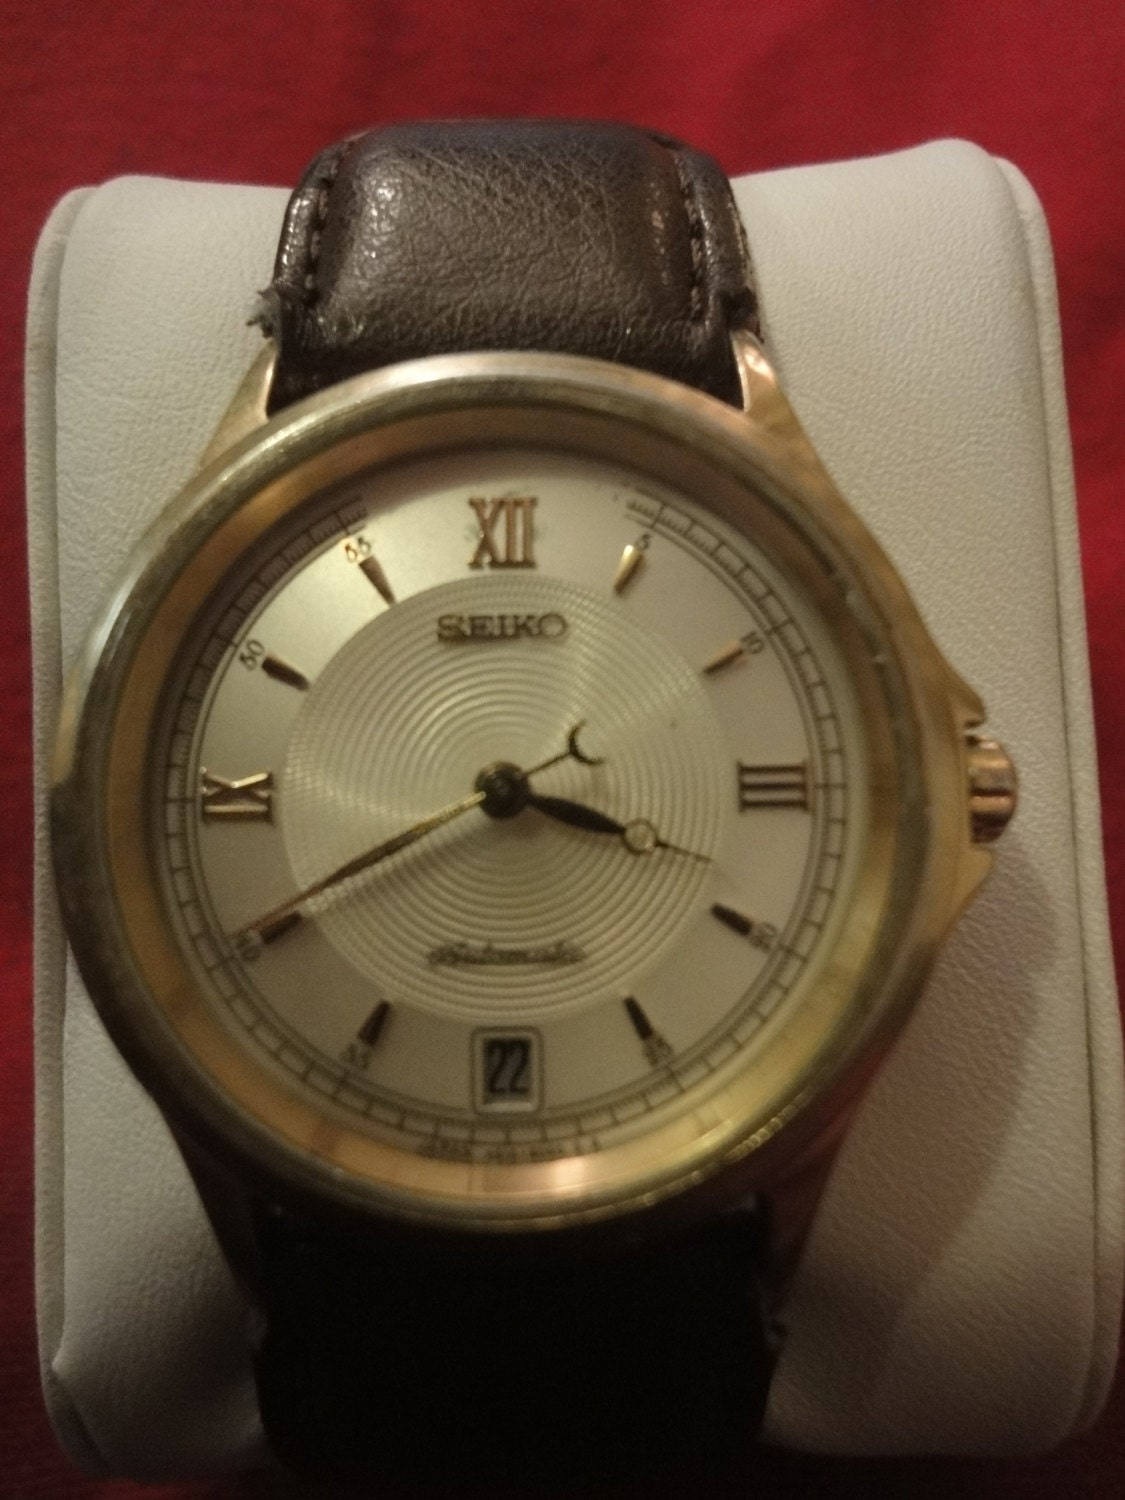 SEIKO (Seiko) antique watch automatic 4S158030 gents very rare!